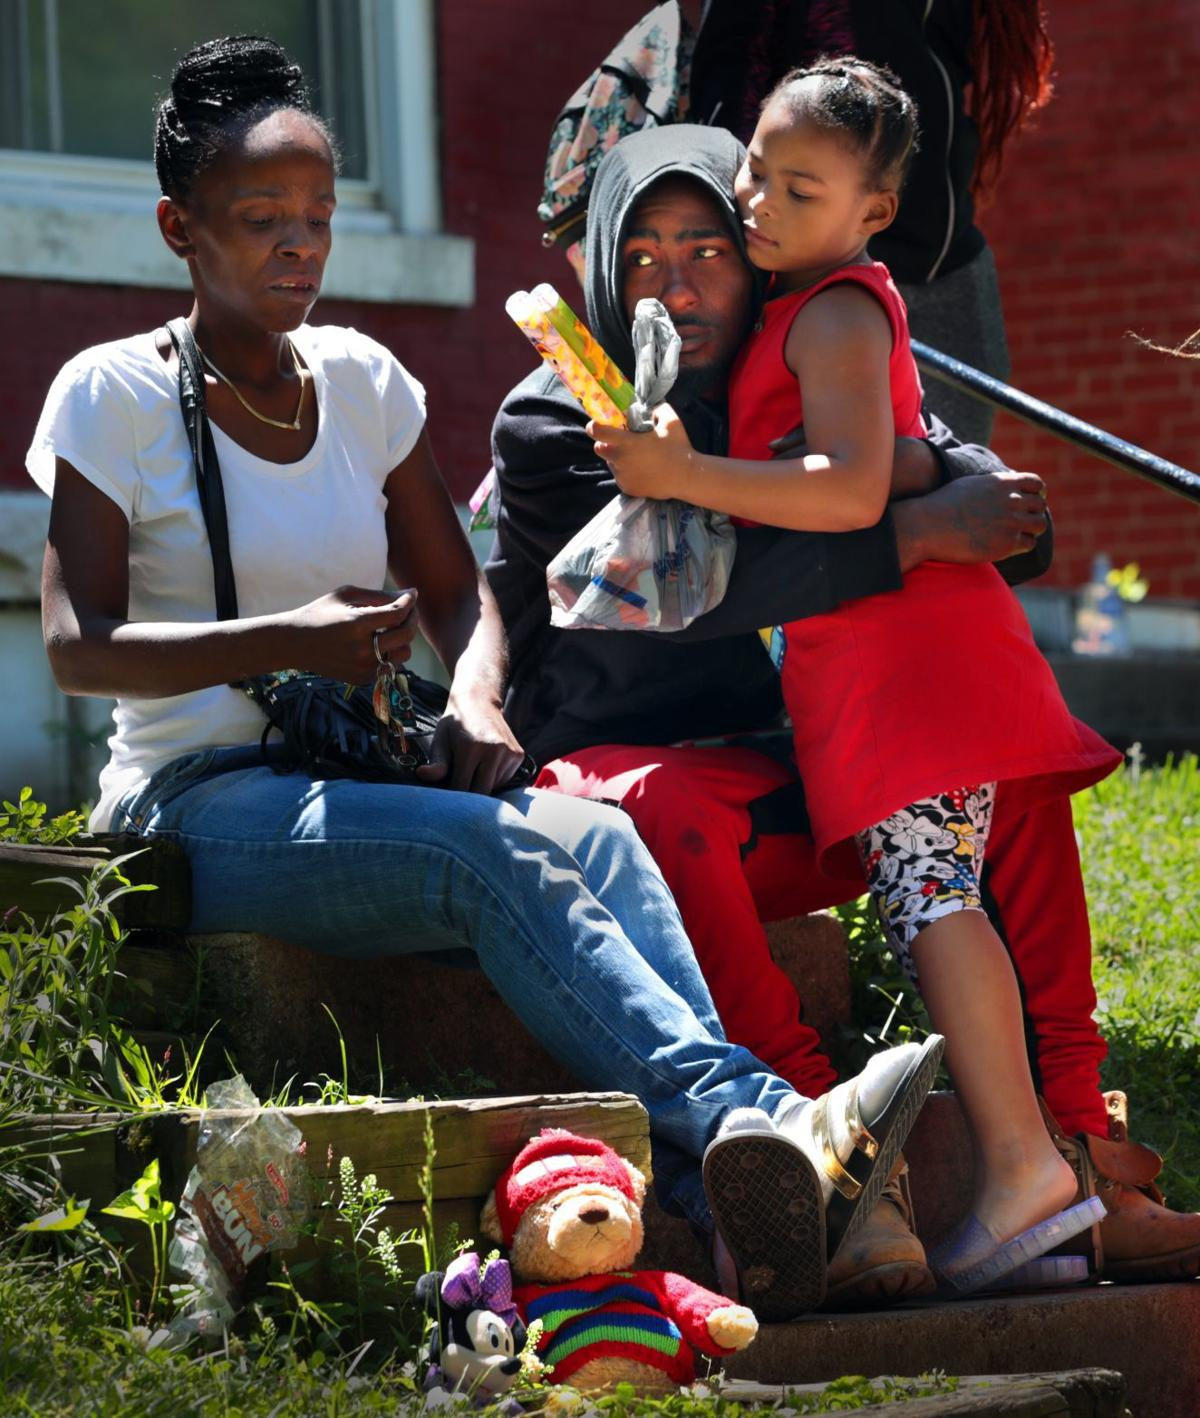 Child killed, another hurt, in drive-by shooting in St. Louis